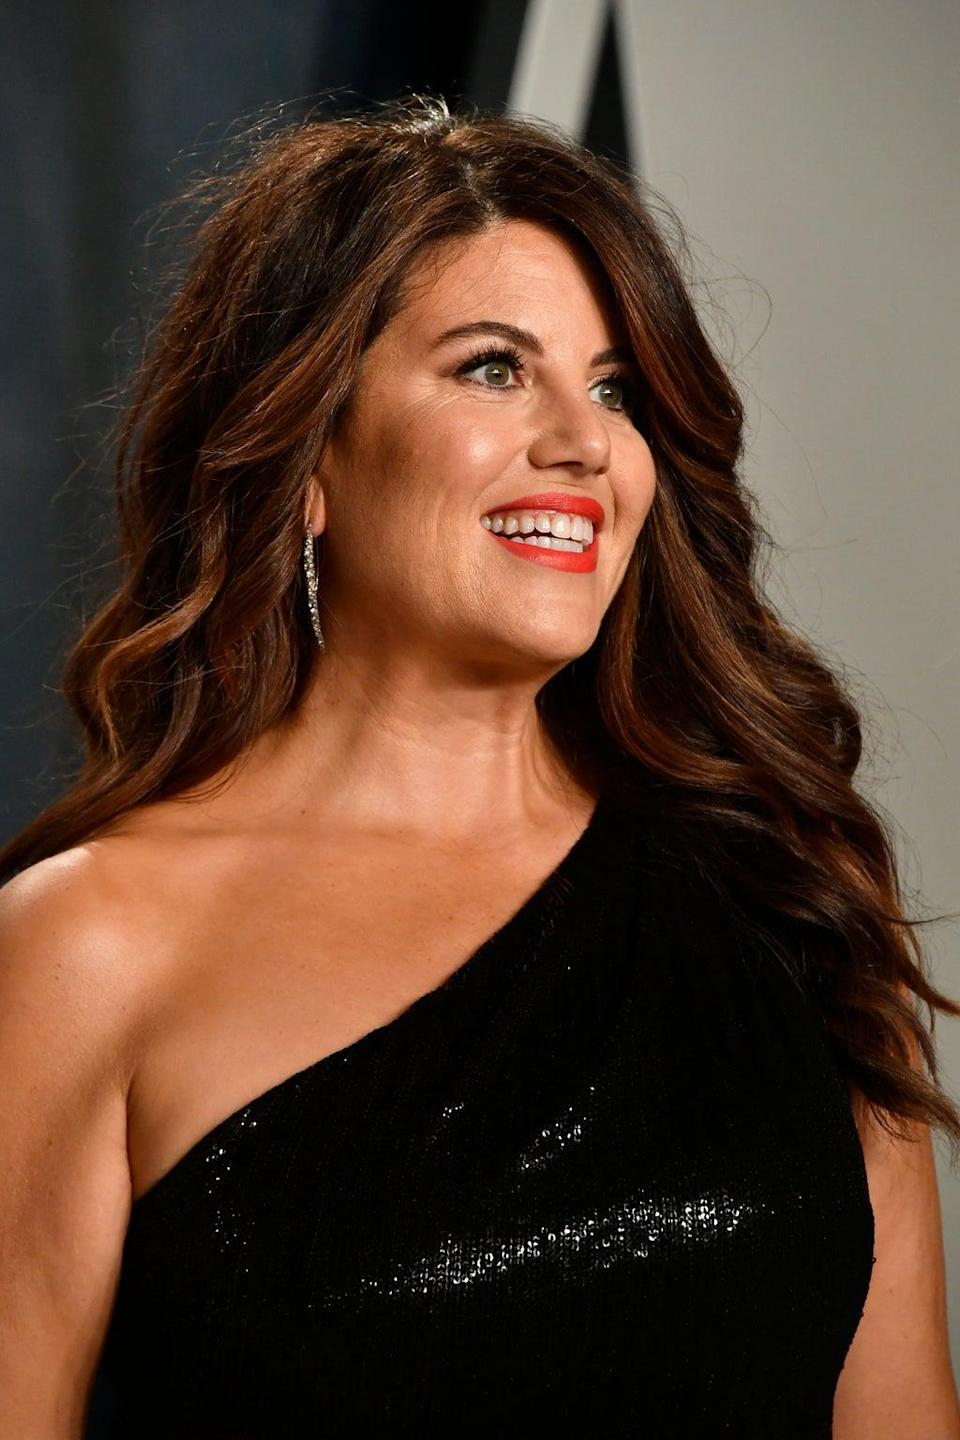 Monica Lewinsky attends the 2020 Vanity Fair Oscar Party on 9 February 2020 in Beverly Hills, California (Frazer Harrison/Getty Images)